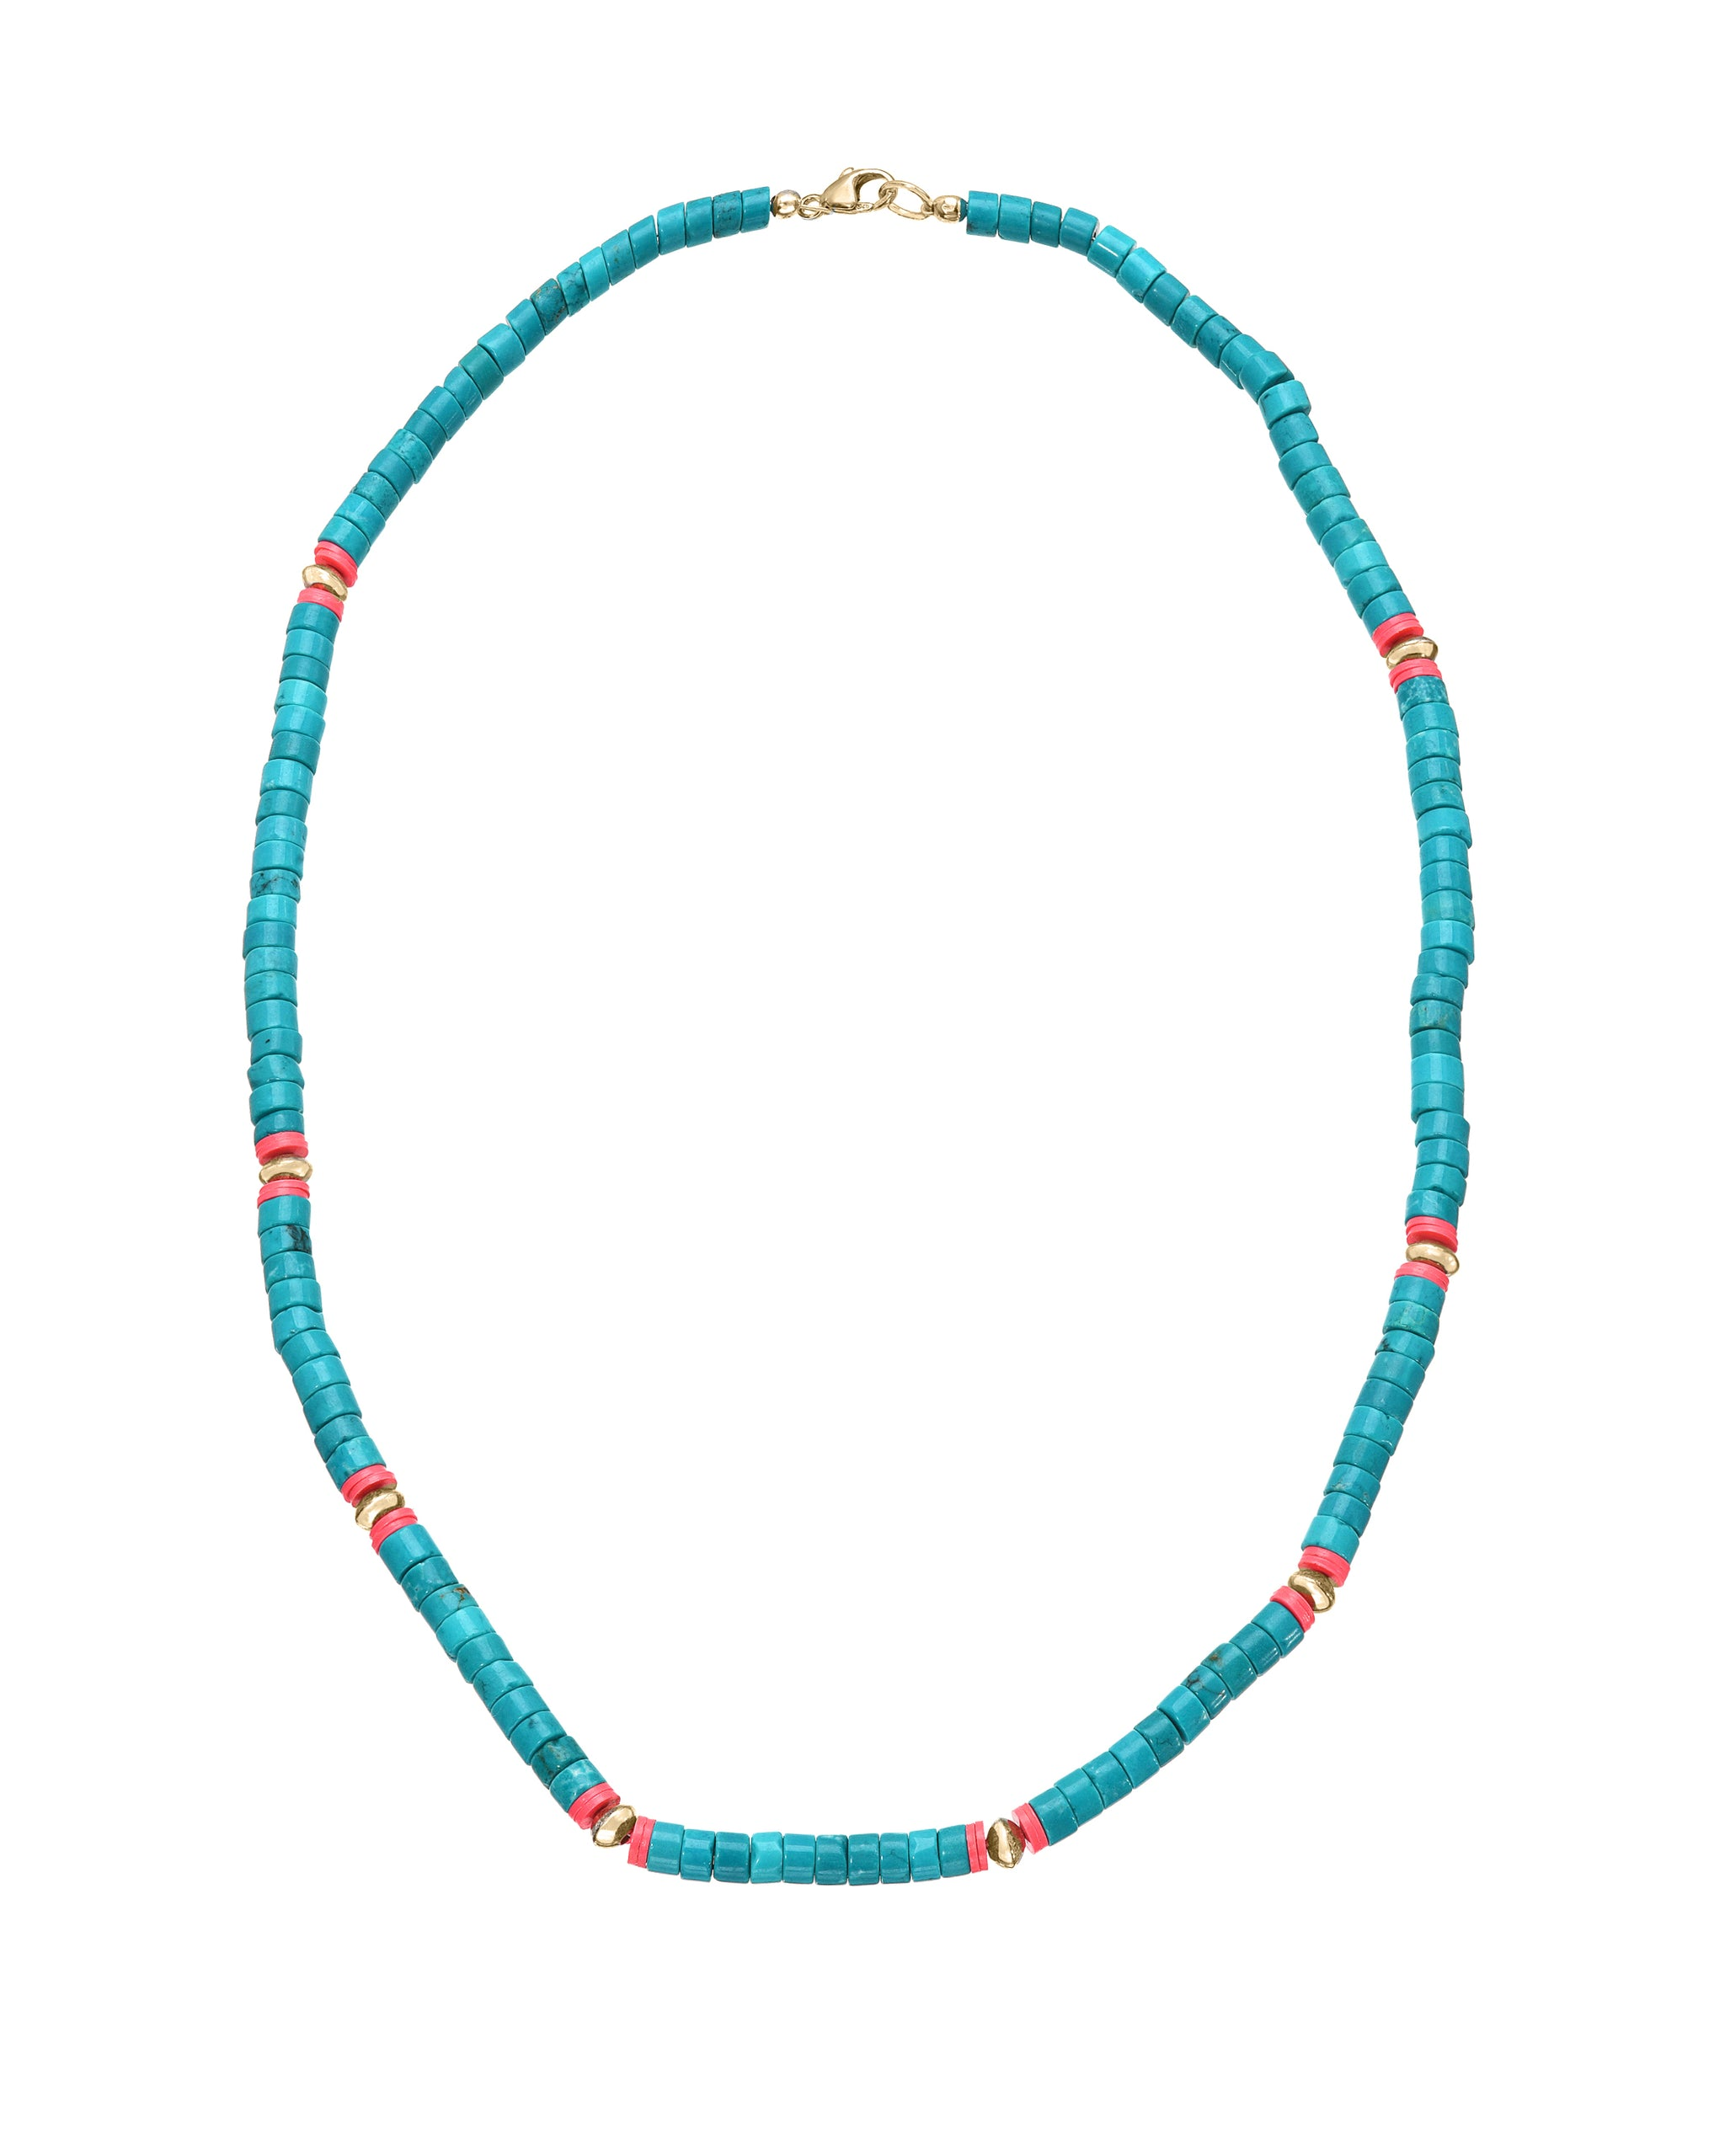 San Miguel Necklace, Turquoise, Hot Pink and Gold Filled Beaded necklace, handmade by Turquoise and Tobacco in Los Angeles California